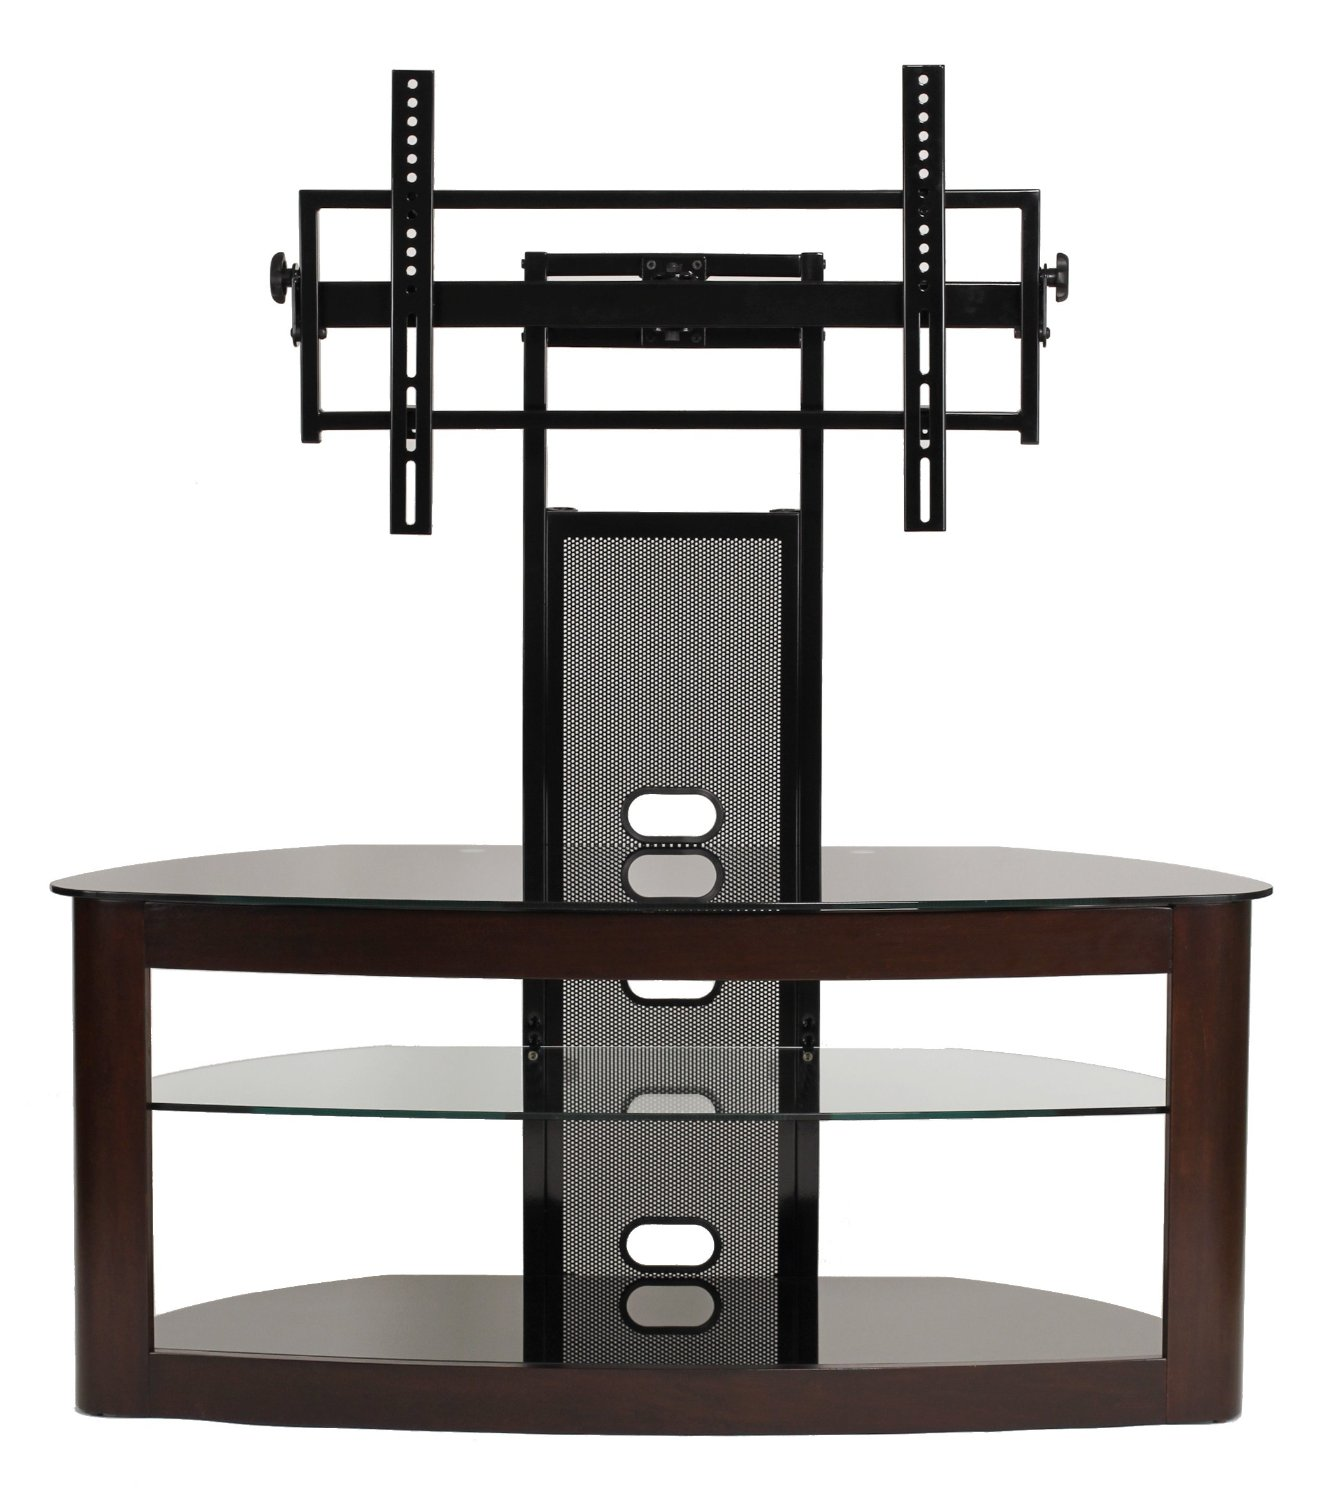 Transdeco Tv Stand With Universal Mounting System For 35 To 65 Inch